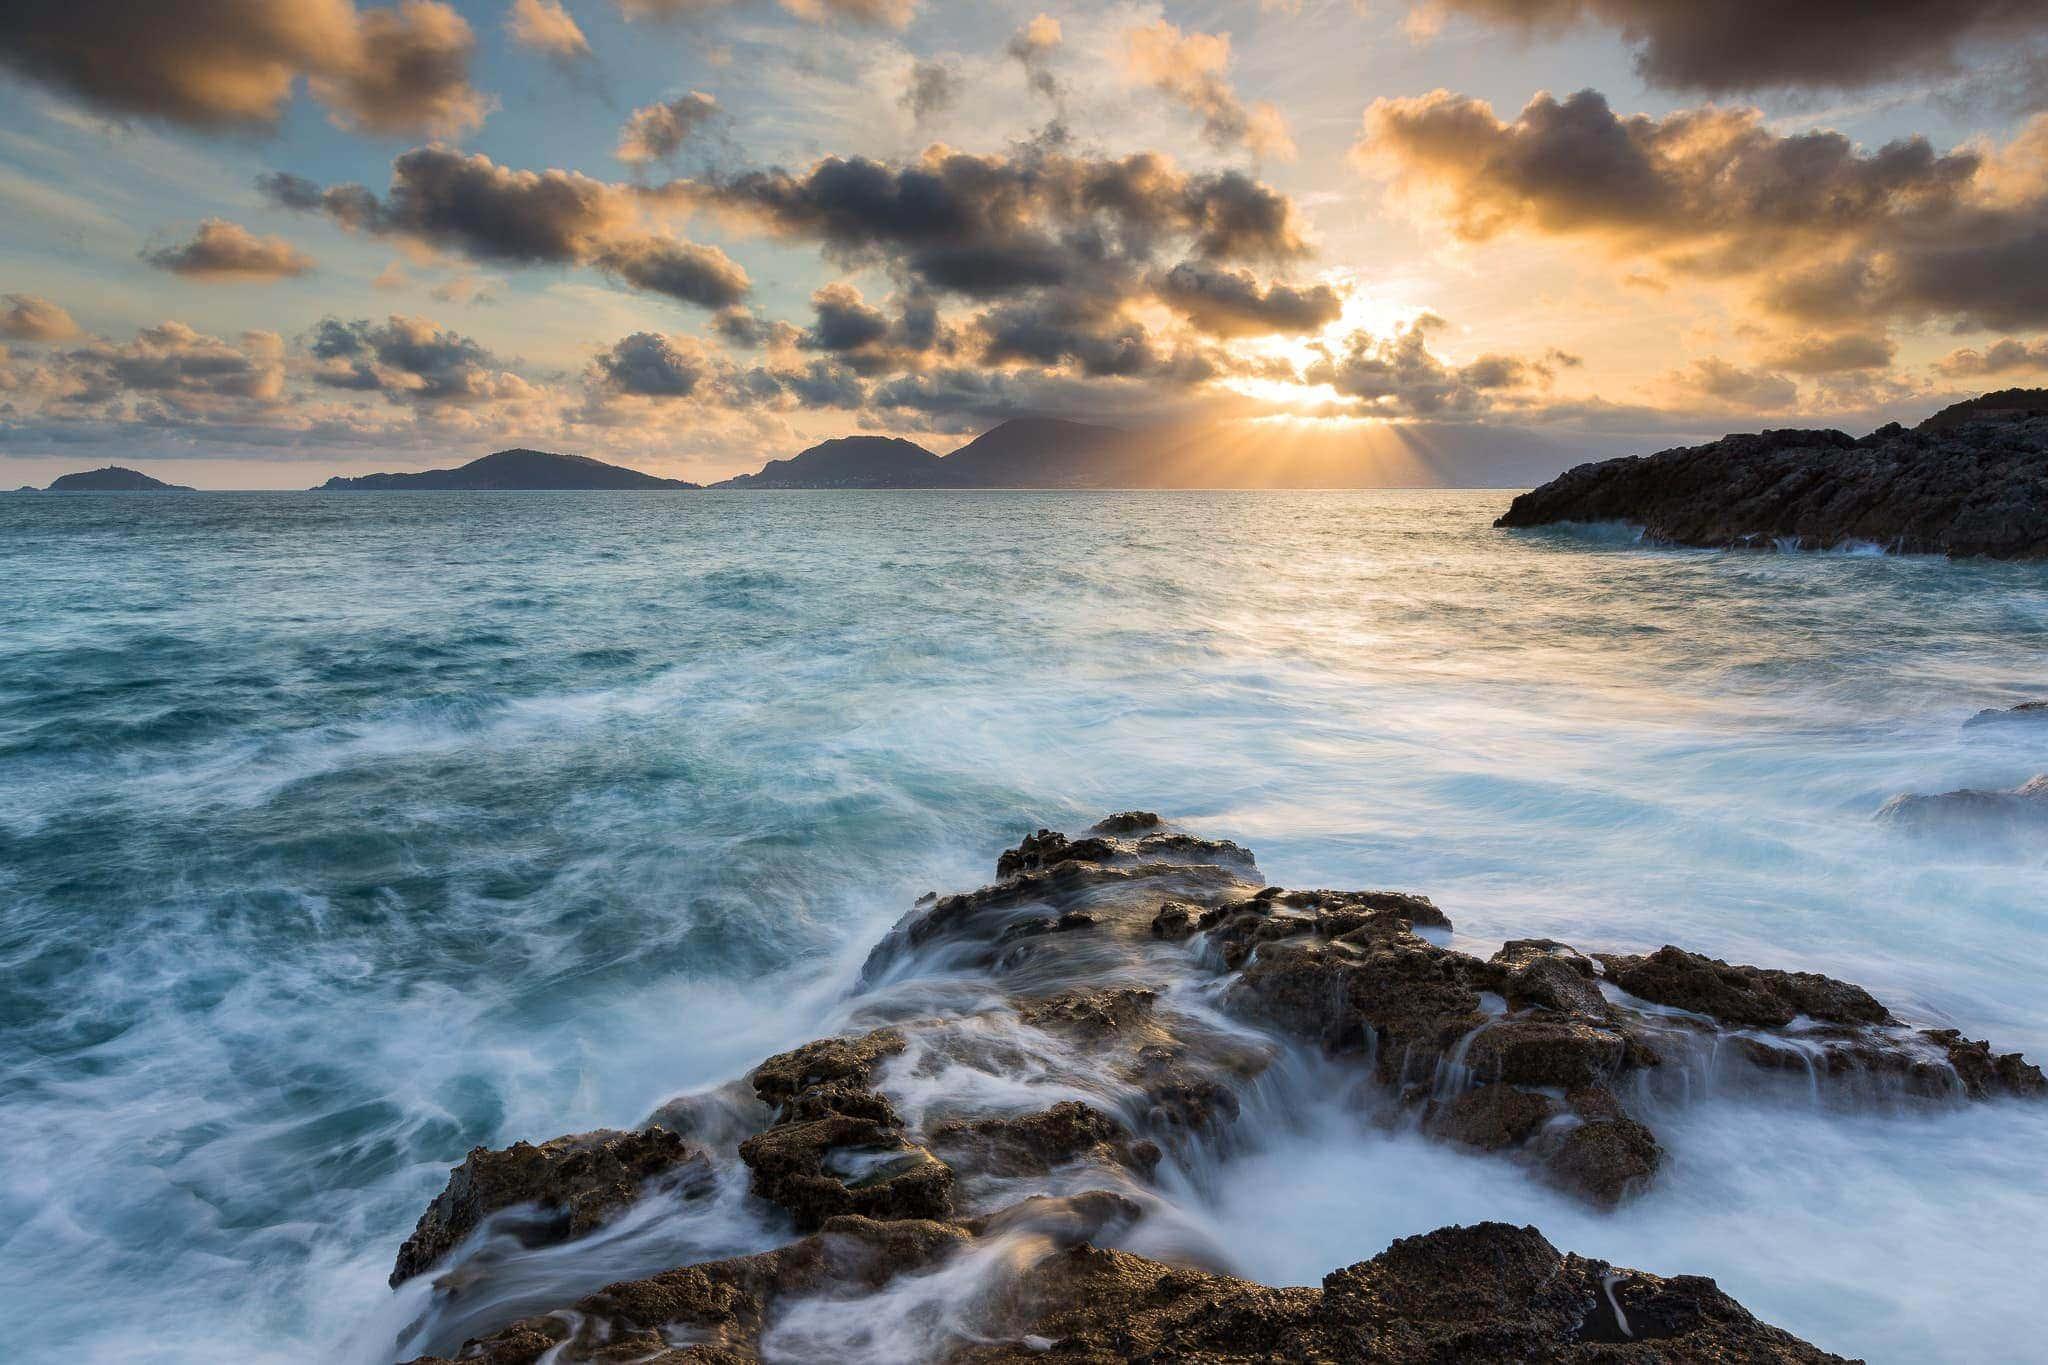 Francesco Gola Seascape Landscape Photography Long Exposure Sunset Summer Lerici Gulf Poets